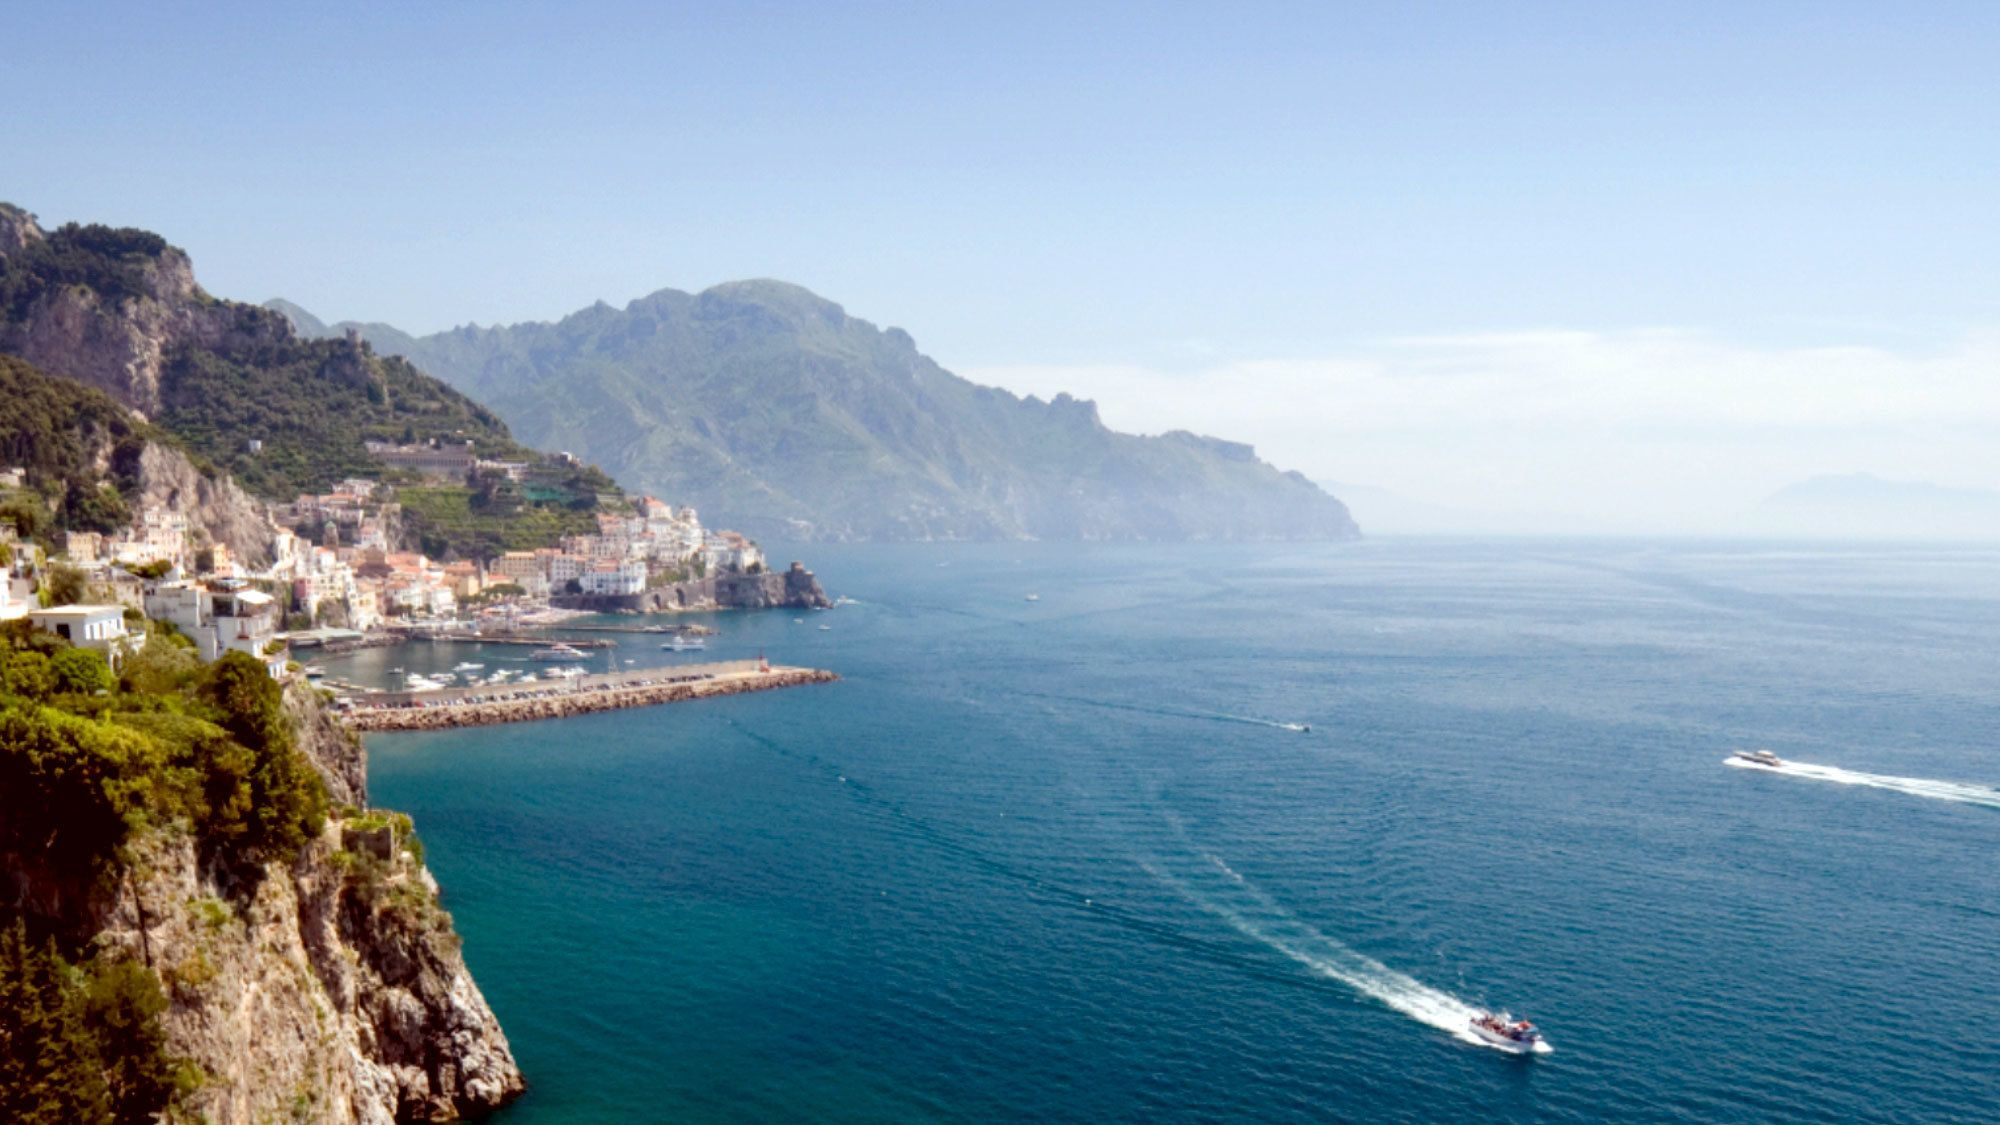 Town on the Amalfi Coast in Italy